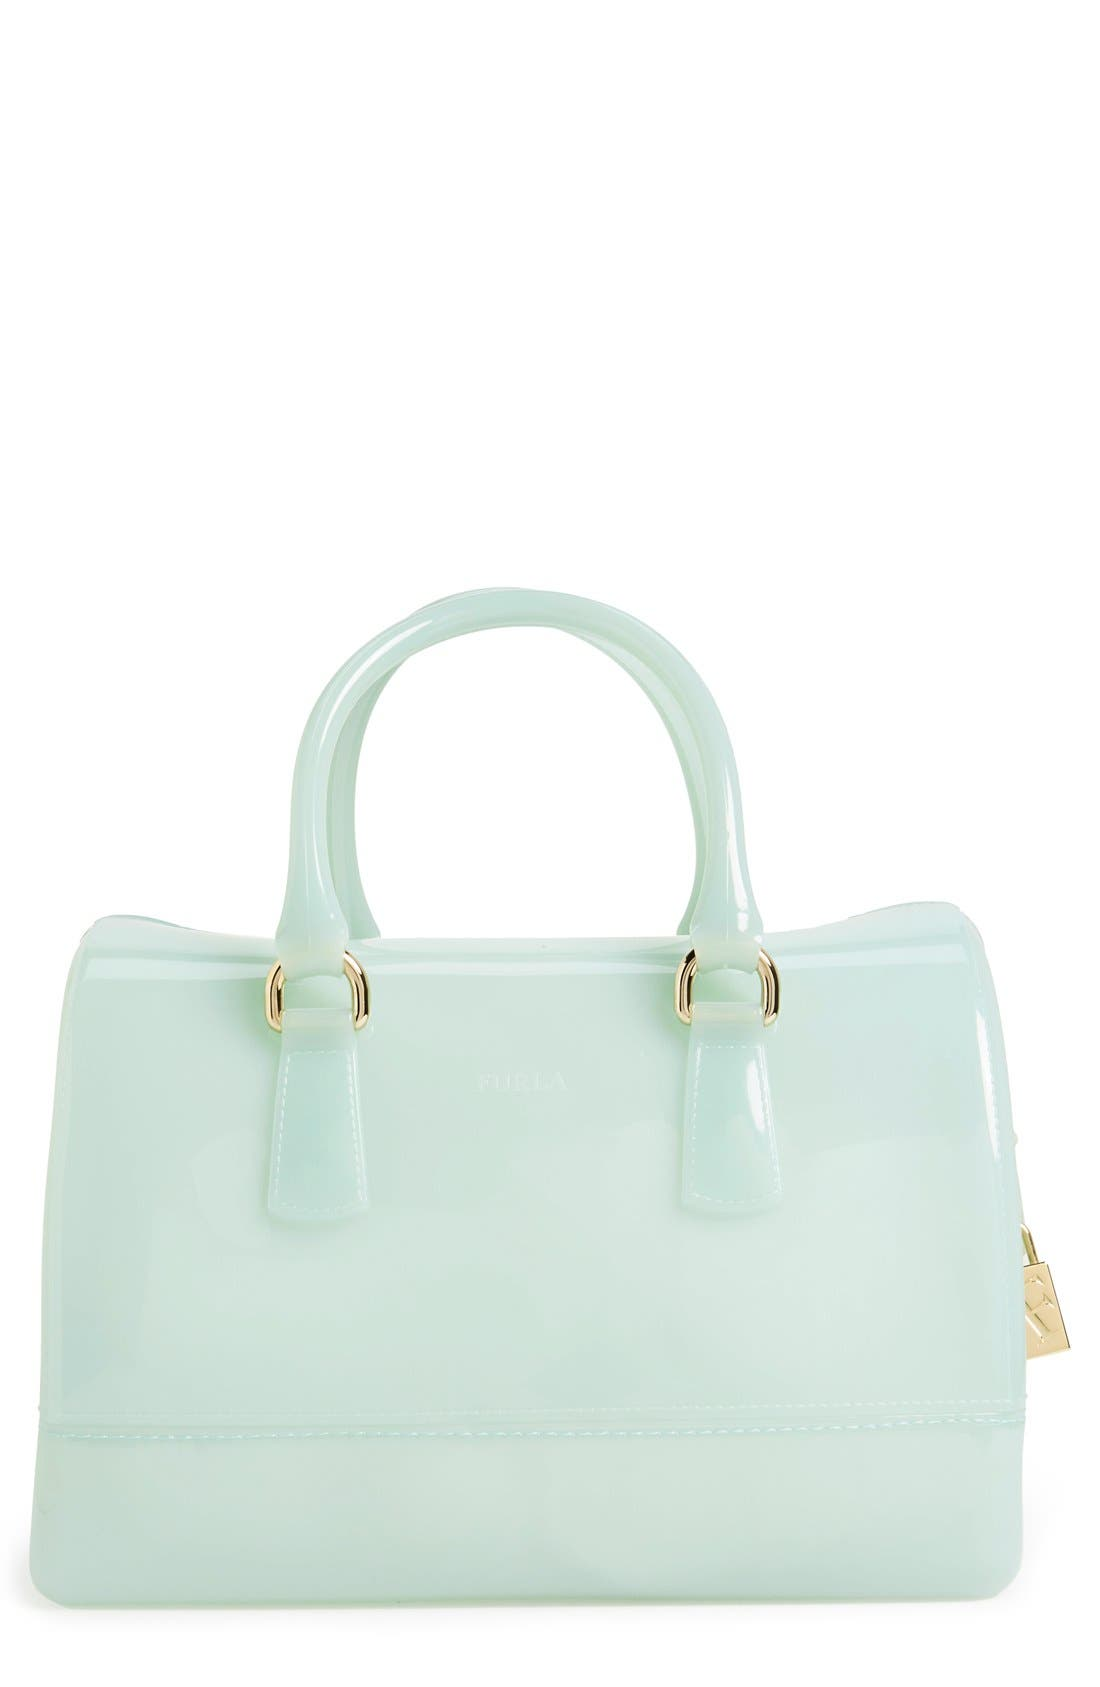 Main Image - Furla 'Candy' Satchel